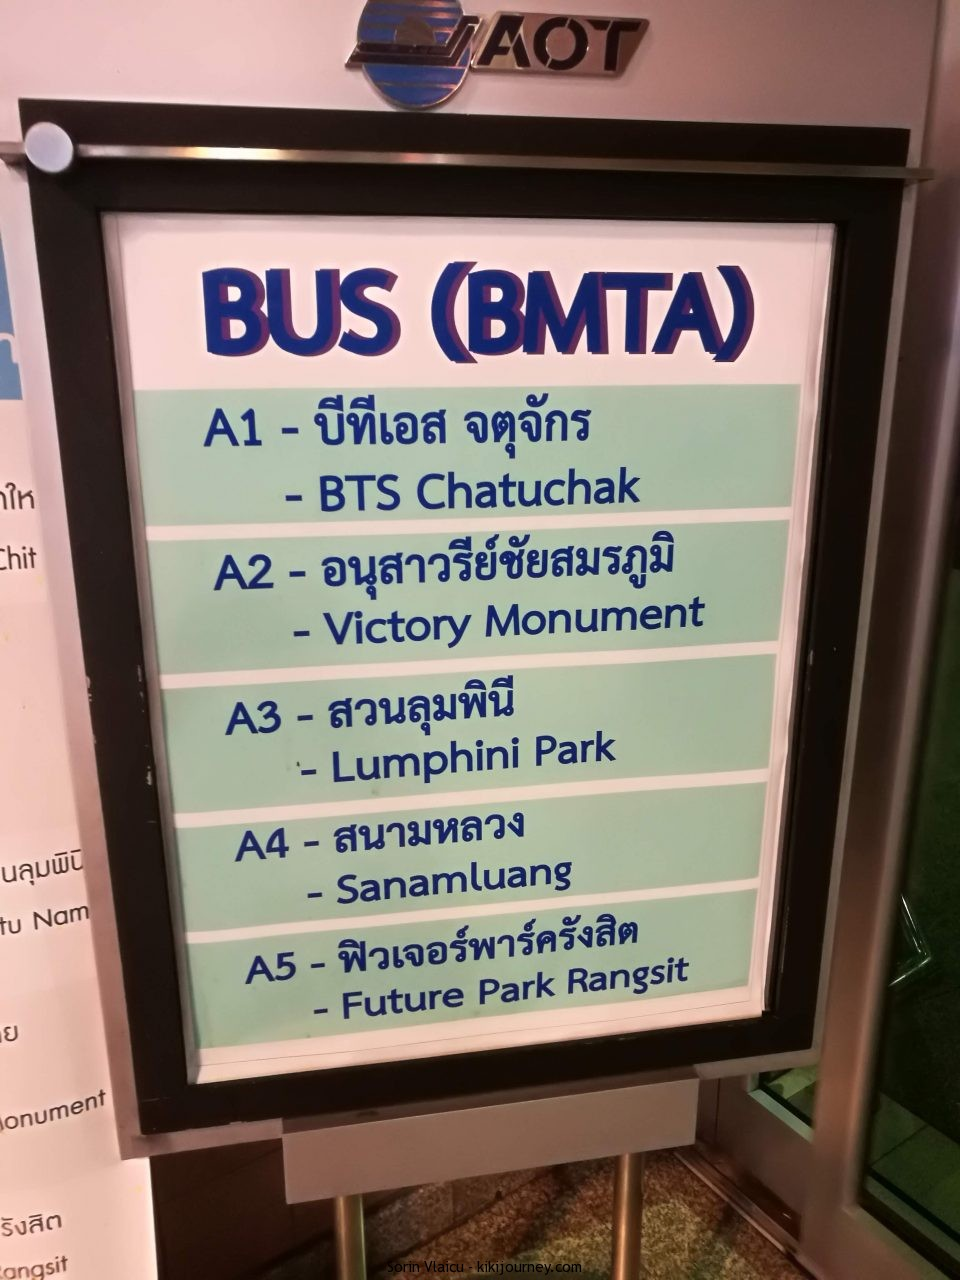 BUS BMTA Bangkok Route